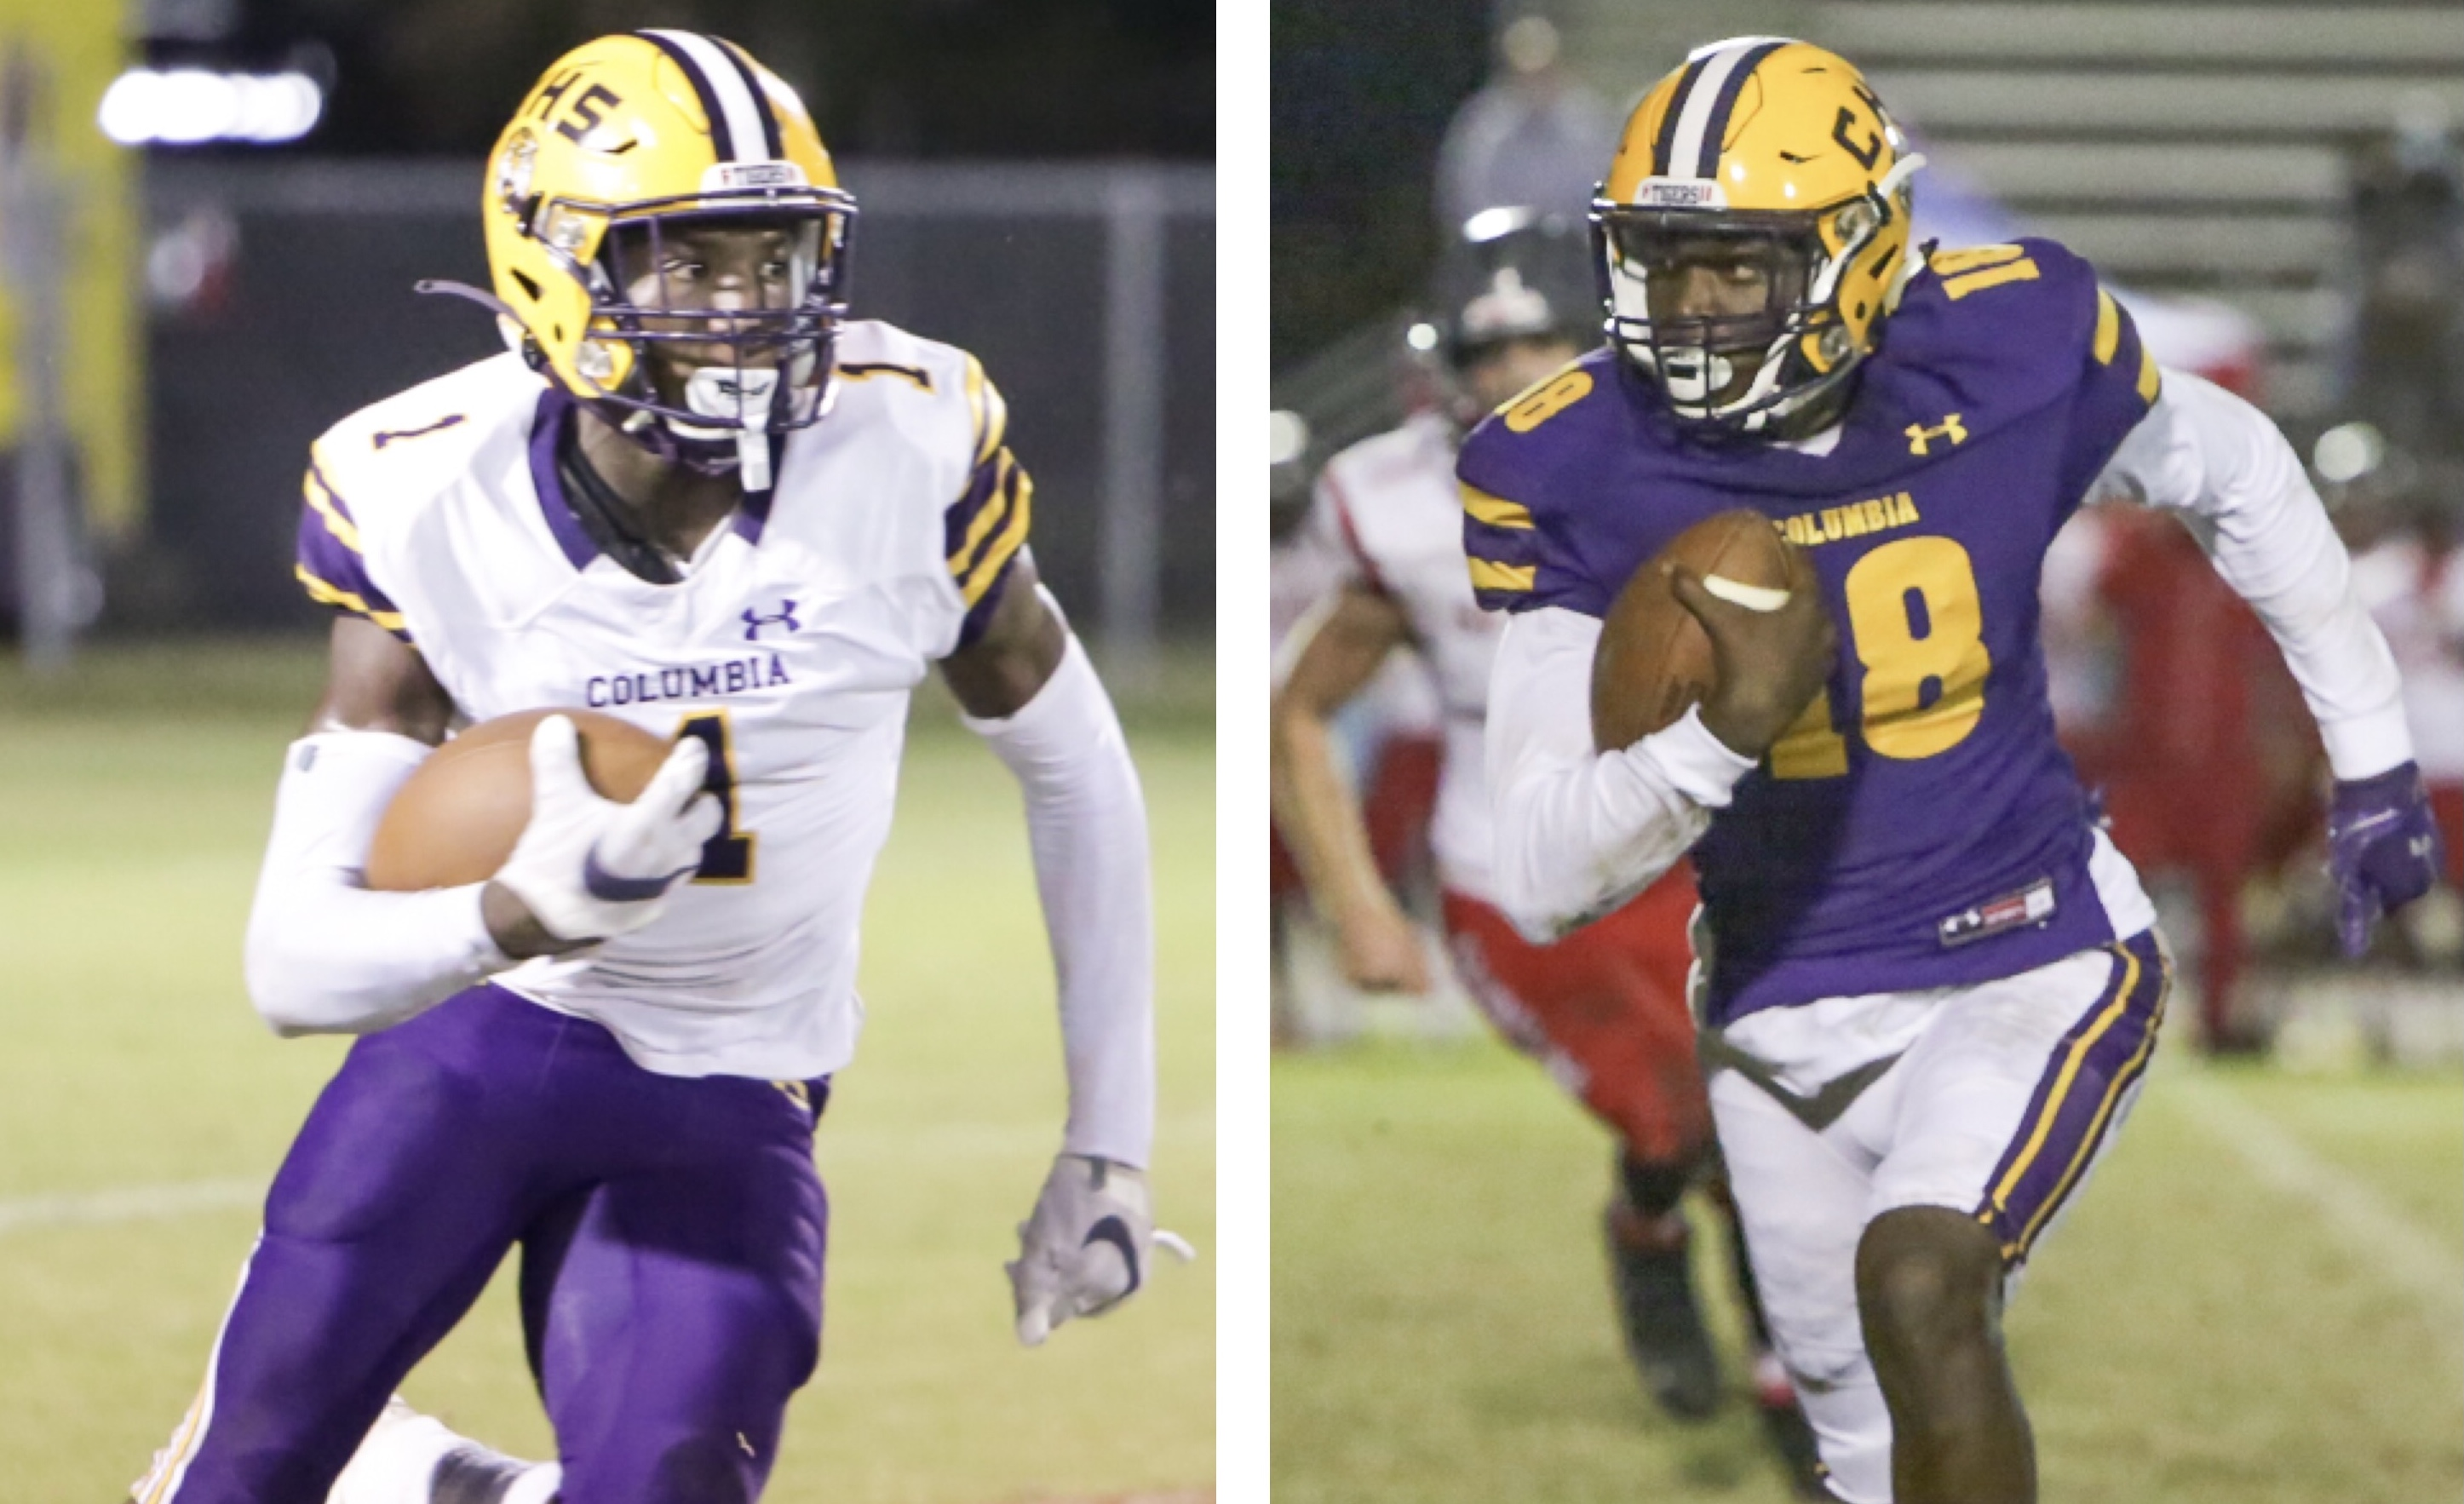 LEFT: Columbia's Shyheim Brown returns a kickoff against Wakulla on Oct. 23. RIGHT: Columbia's Marcus Peterson takes a carry up the field against Seabreeze during the Region 1-6A quarterfinals on Nov. 20. (BRENT KUYKENDALL/Lake City Reporter)